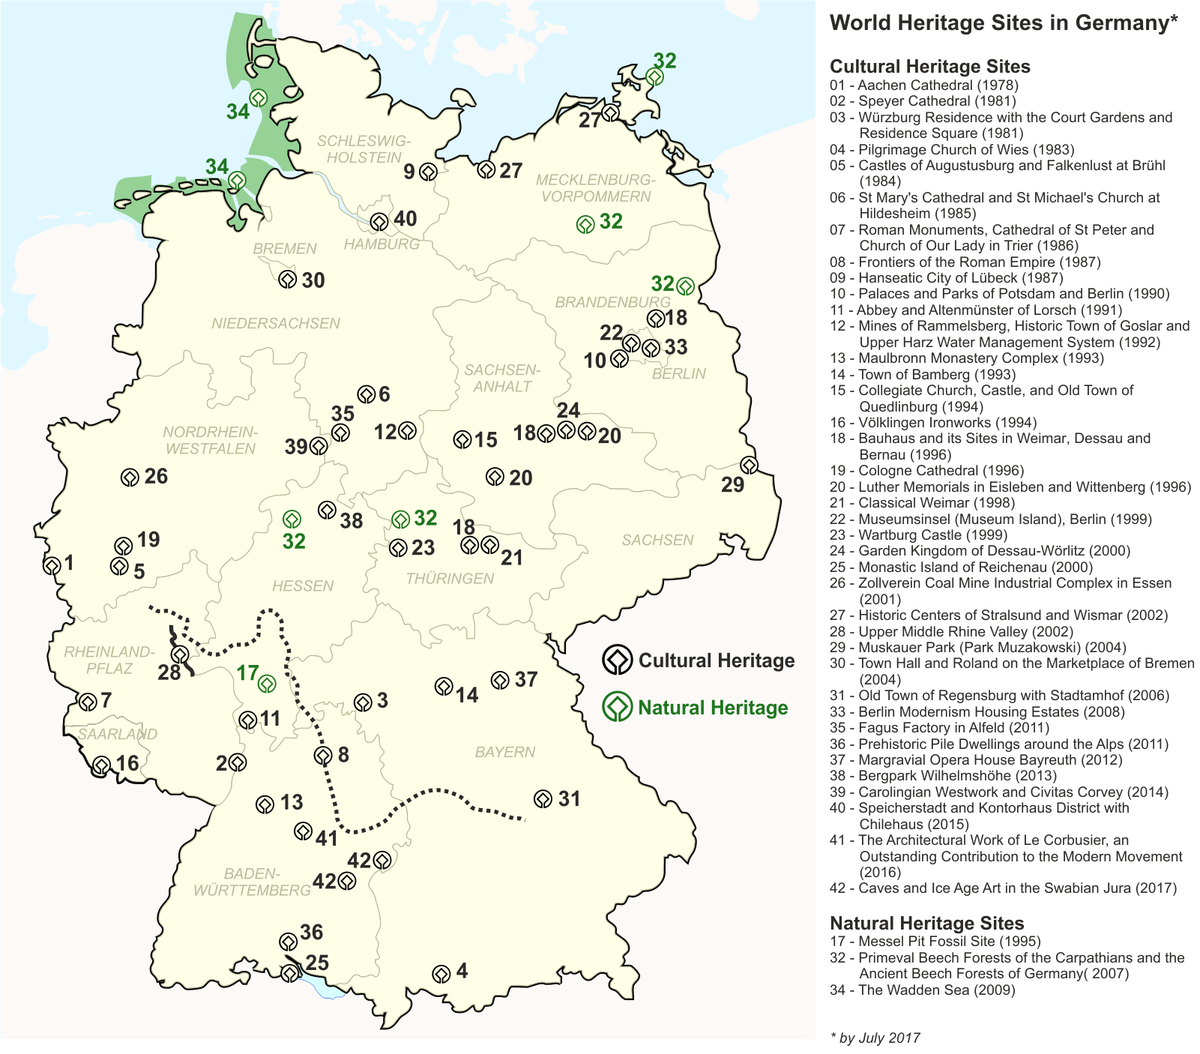 List of world heritage sites in germany wikipedia for World heritage site list